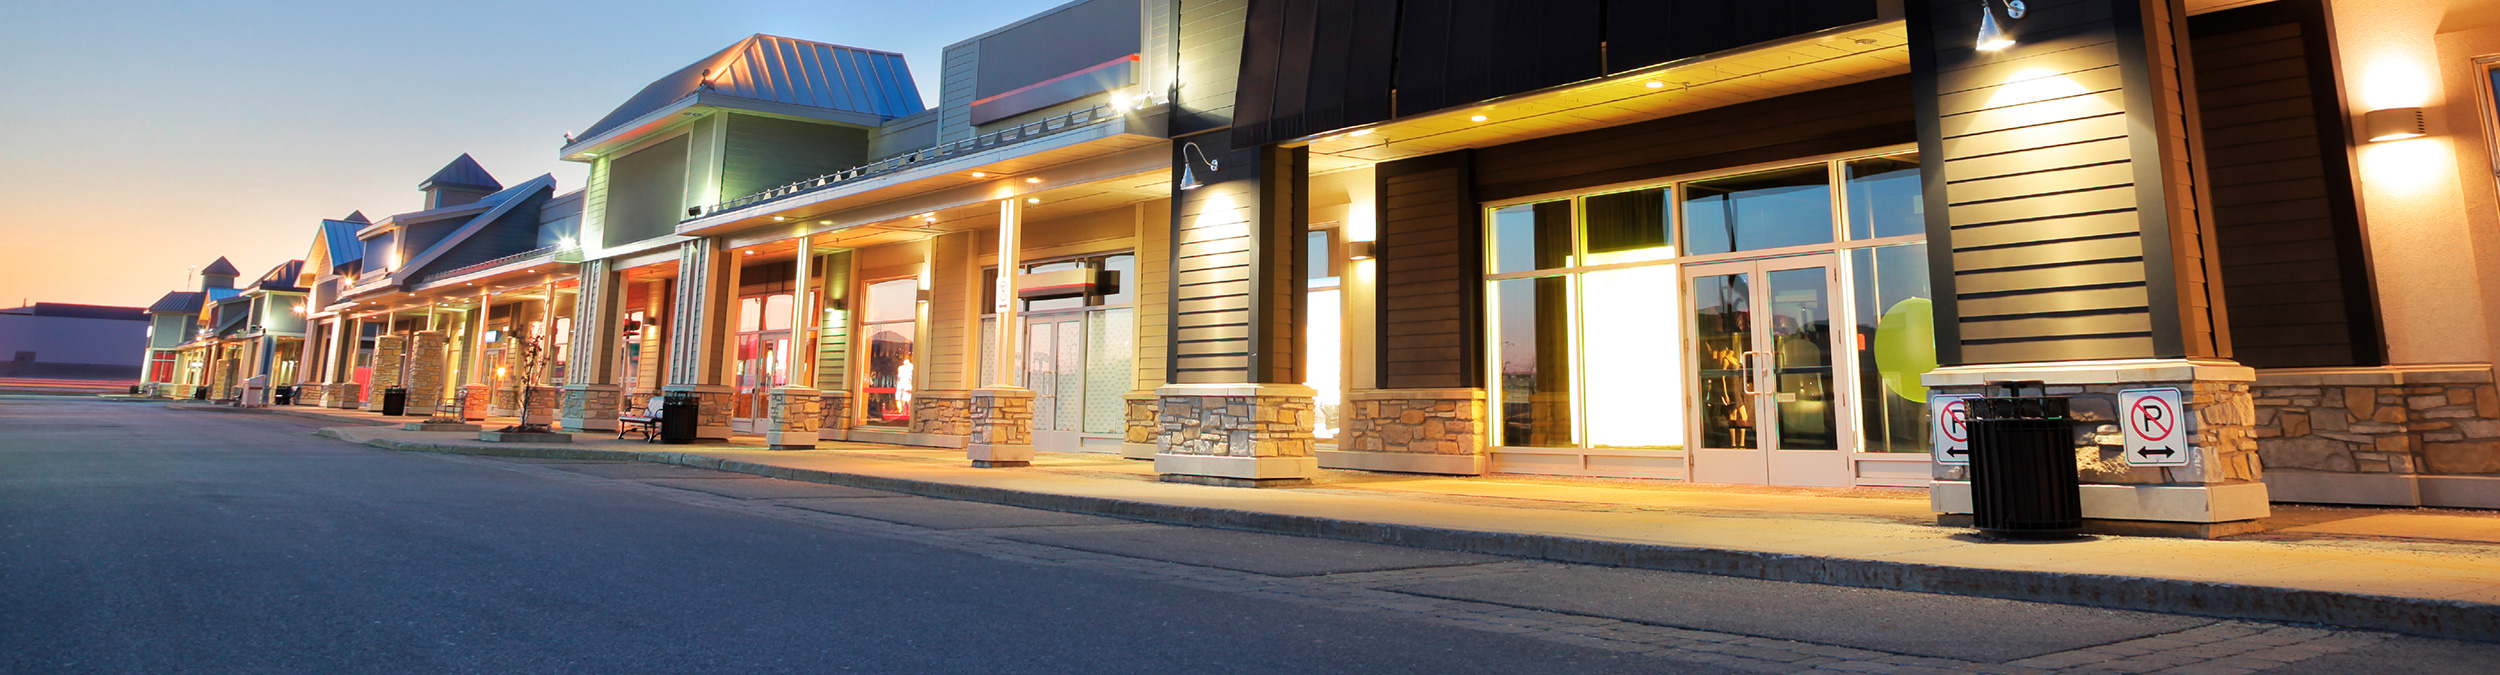 Store Fronts at Dusk_02